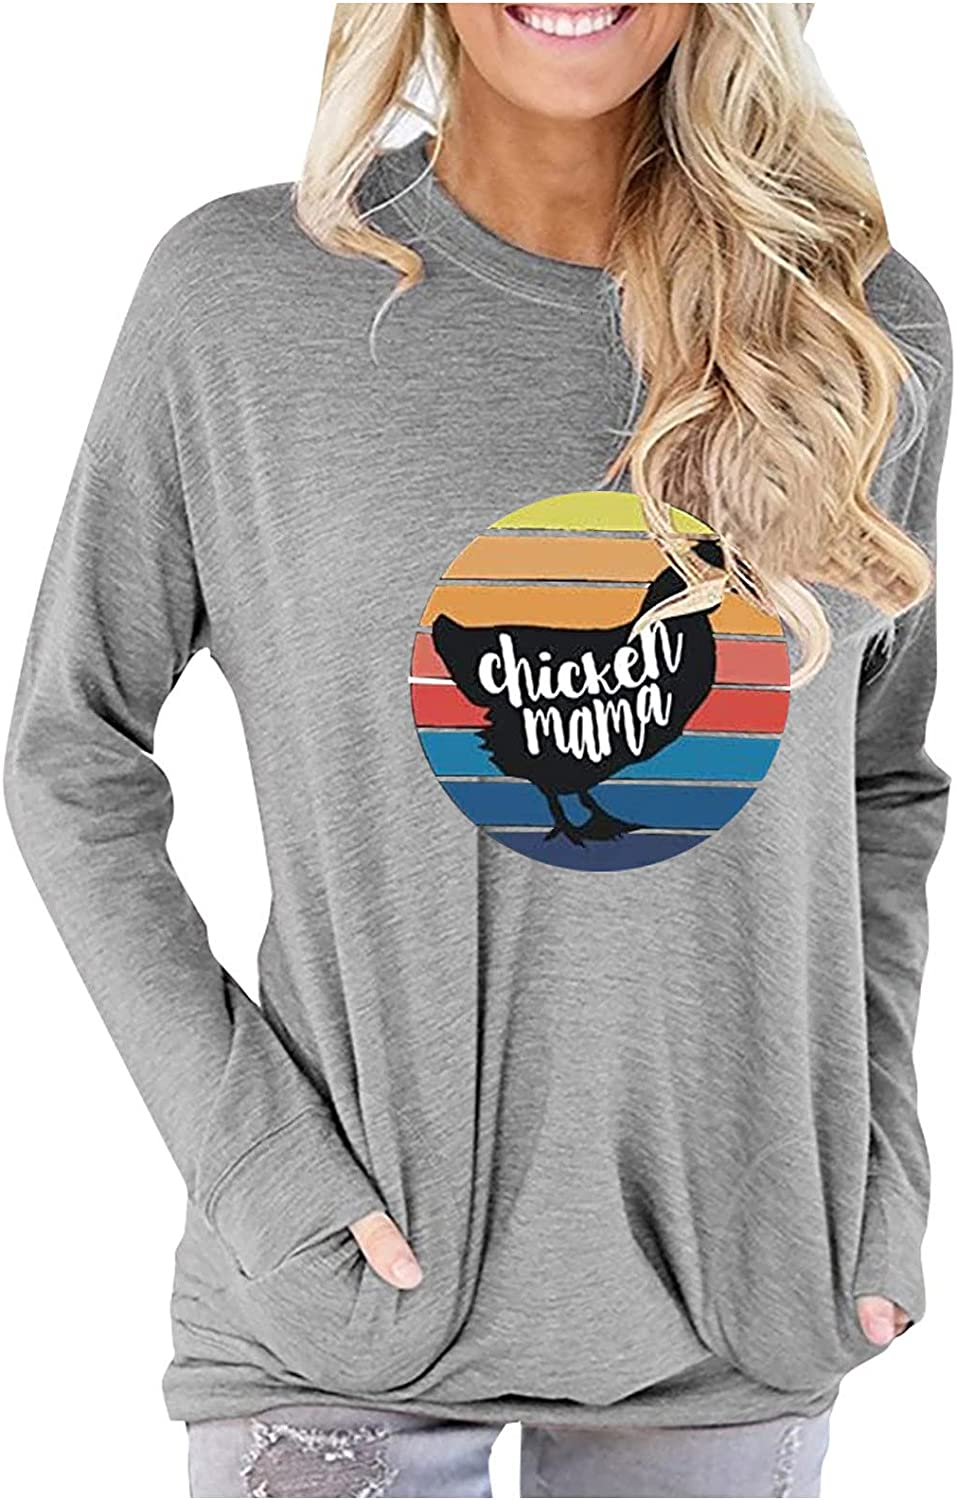 GERsome Casual Crewneck Sweatshirts for Women Rooster Print Long Sleeve Pocket Shirts Fashion Loose Plus Size Pullover Blouse